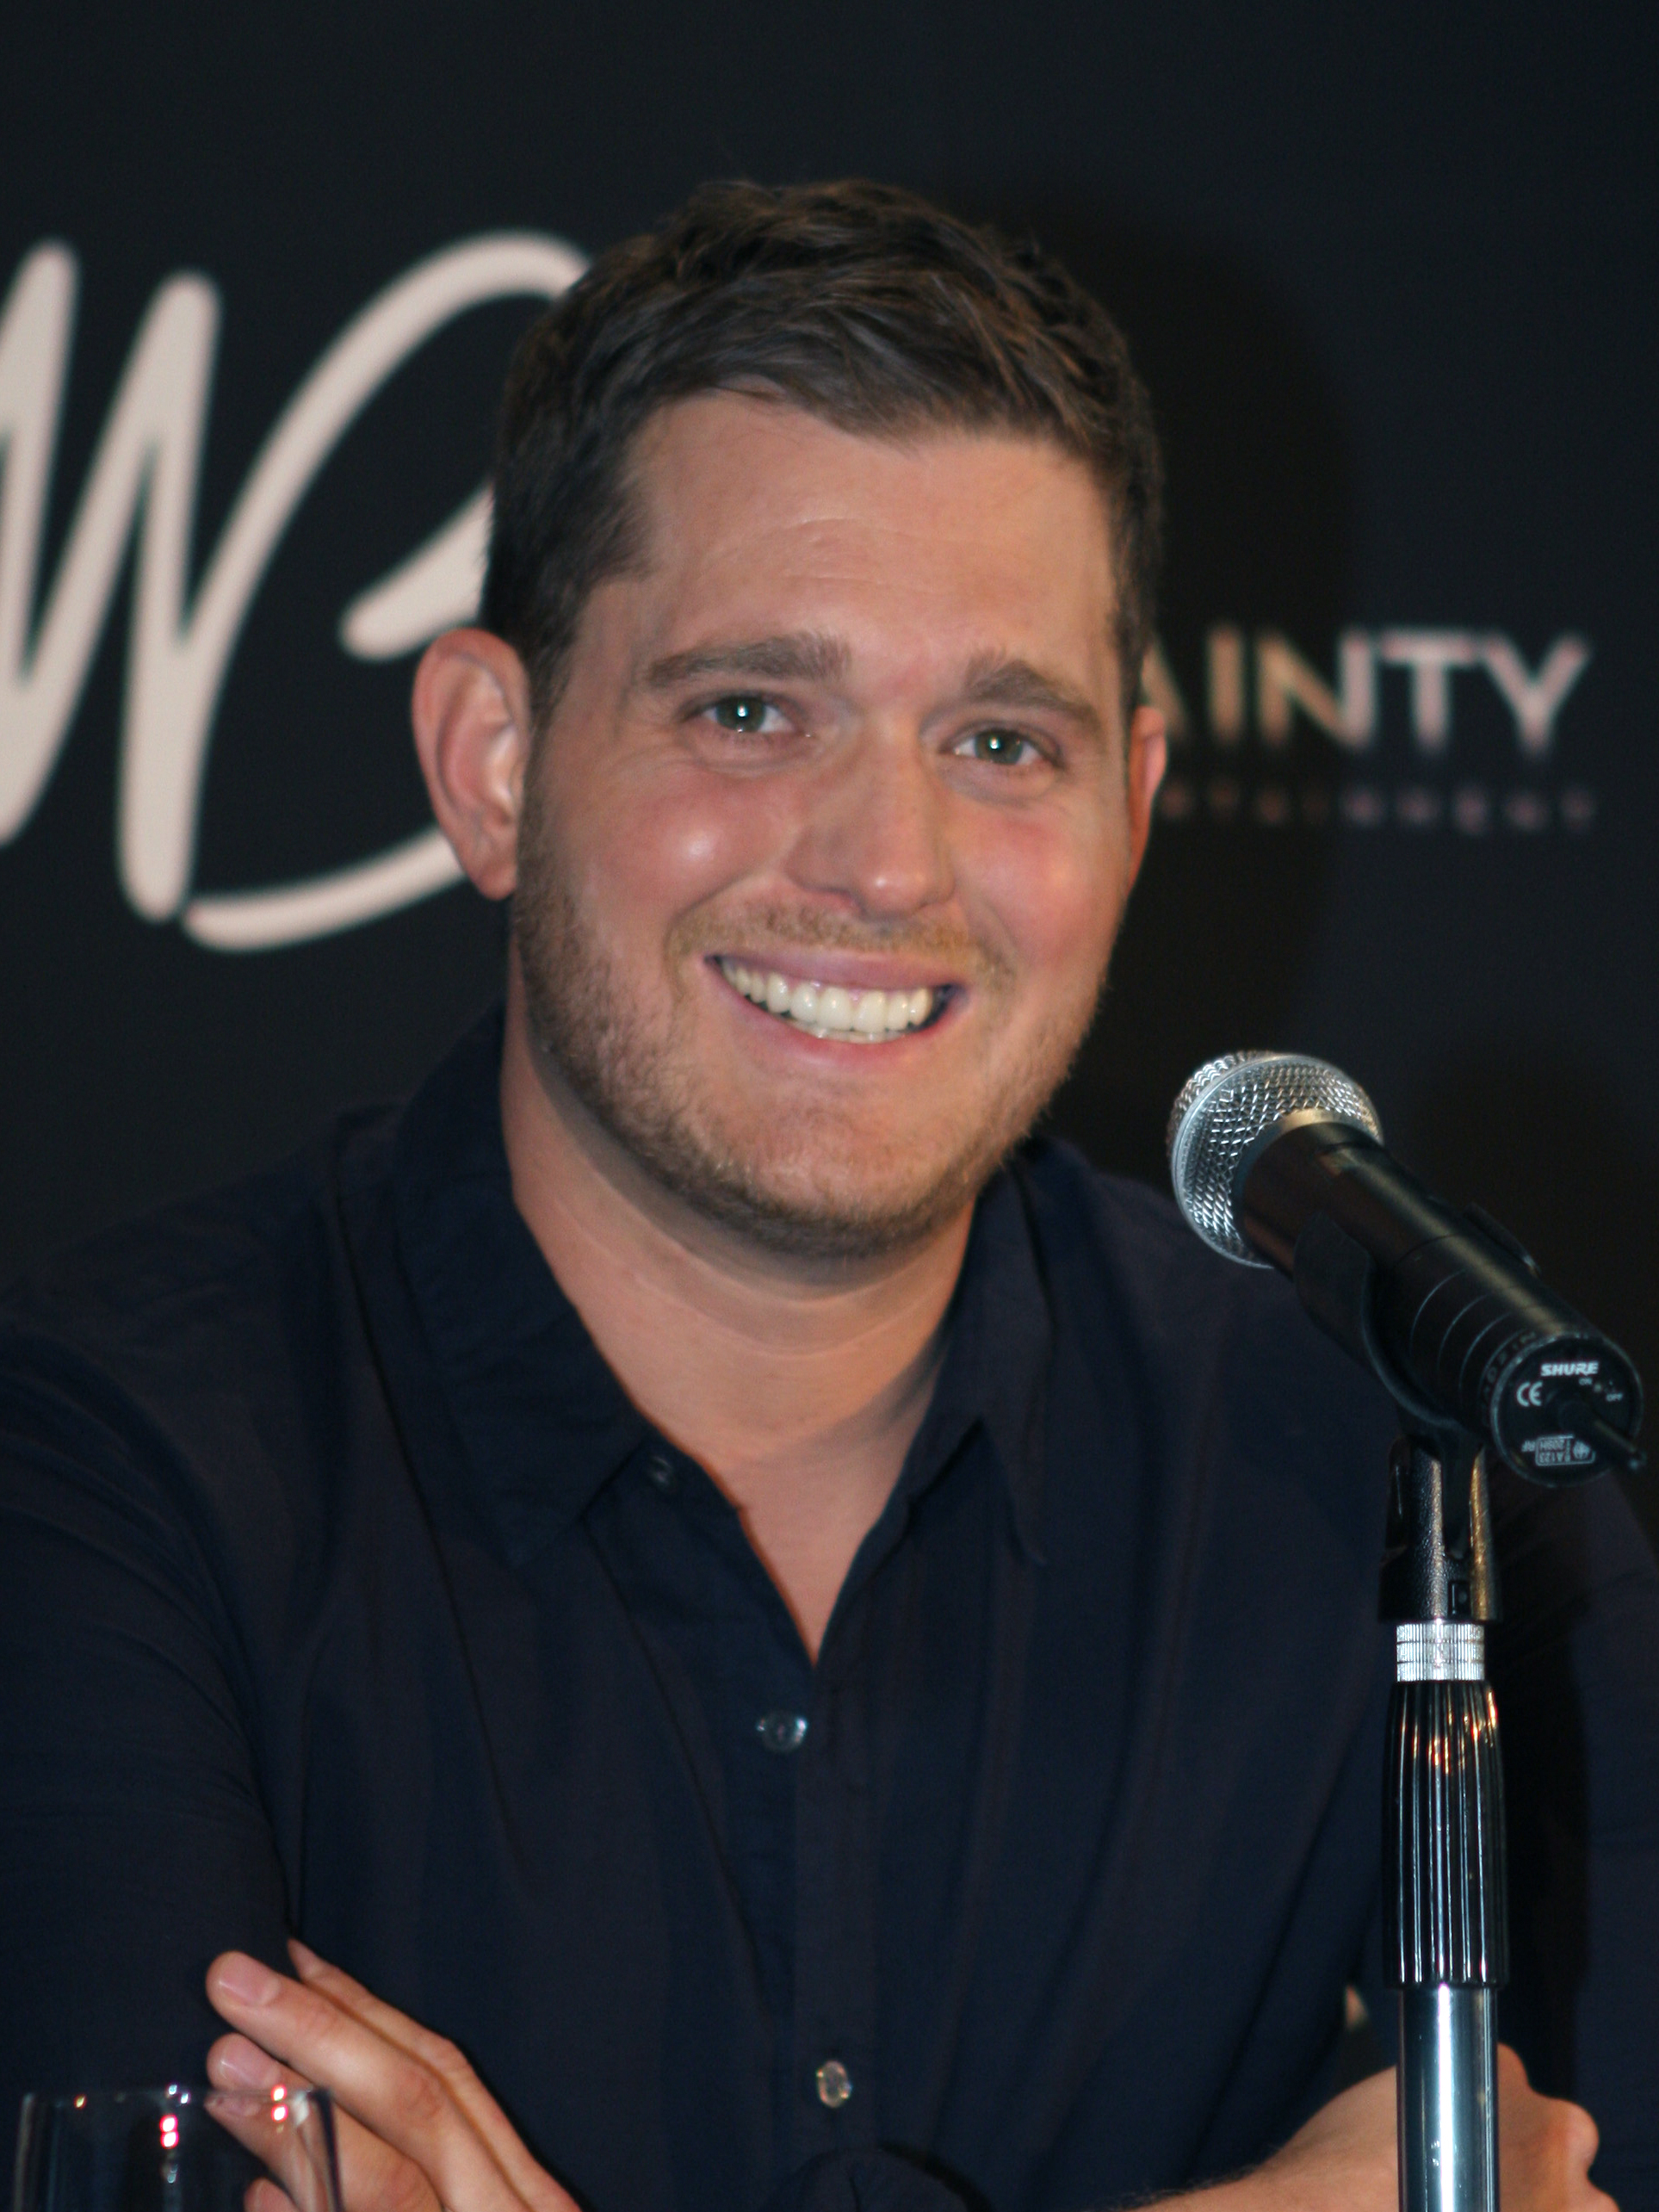 6 year old with autism gets a personal video from his favourite singer, Michael Bublé